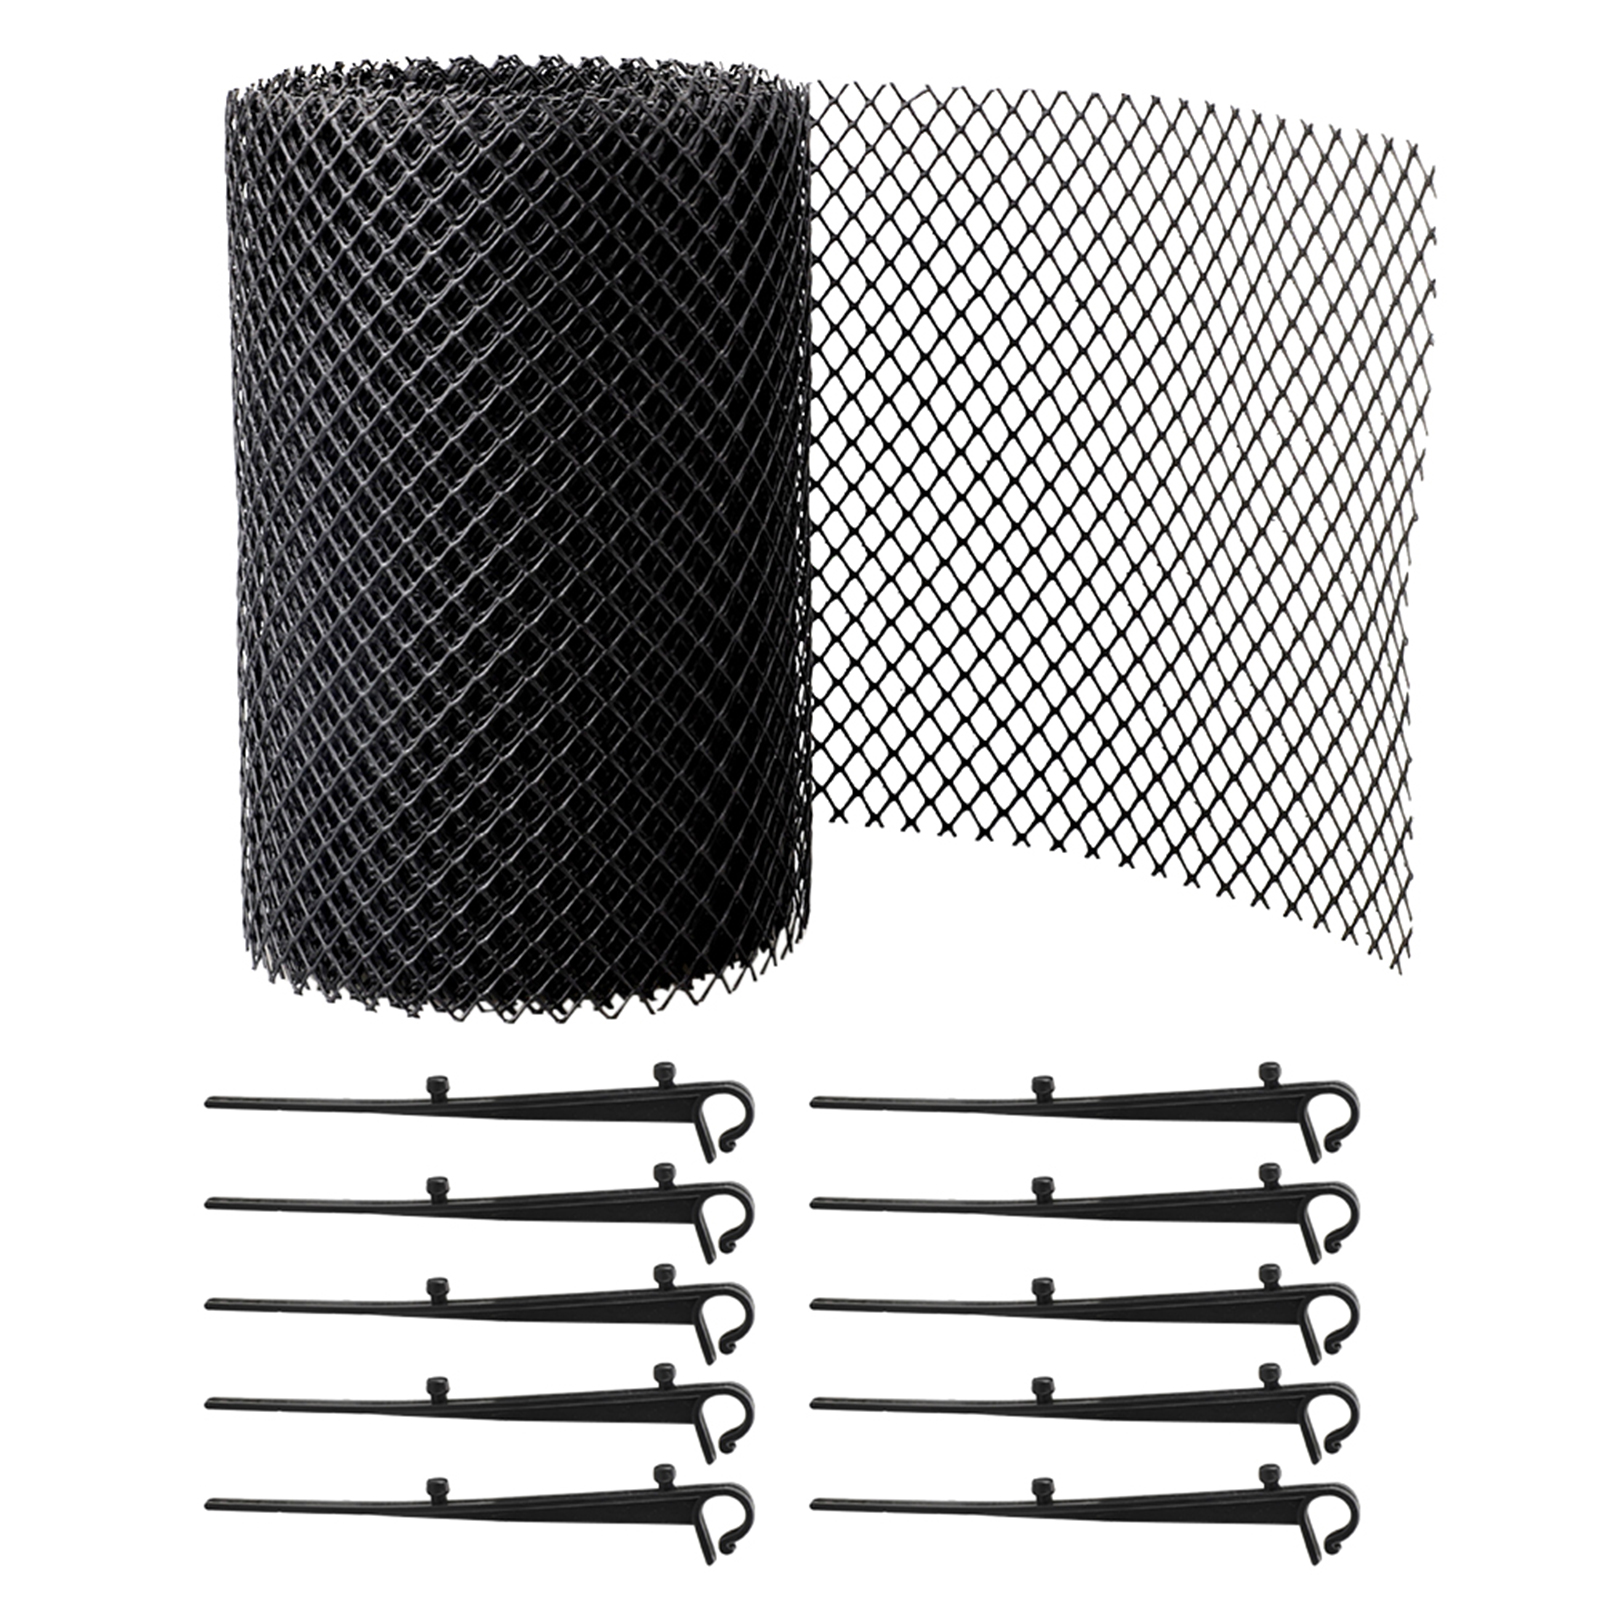 Reduce Overflow Balcony Flexible Cleaning Tool Gutter Guard Floor Stops Leaves Easy Install Garden Mesh Cover Anti Clogging